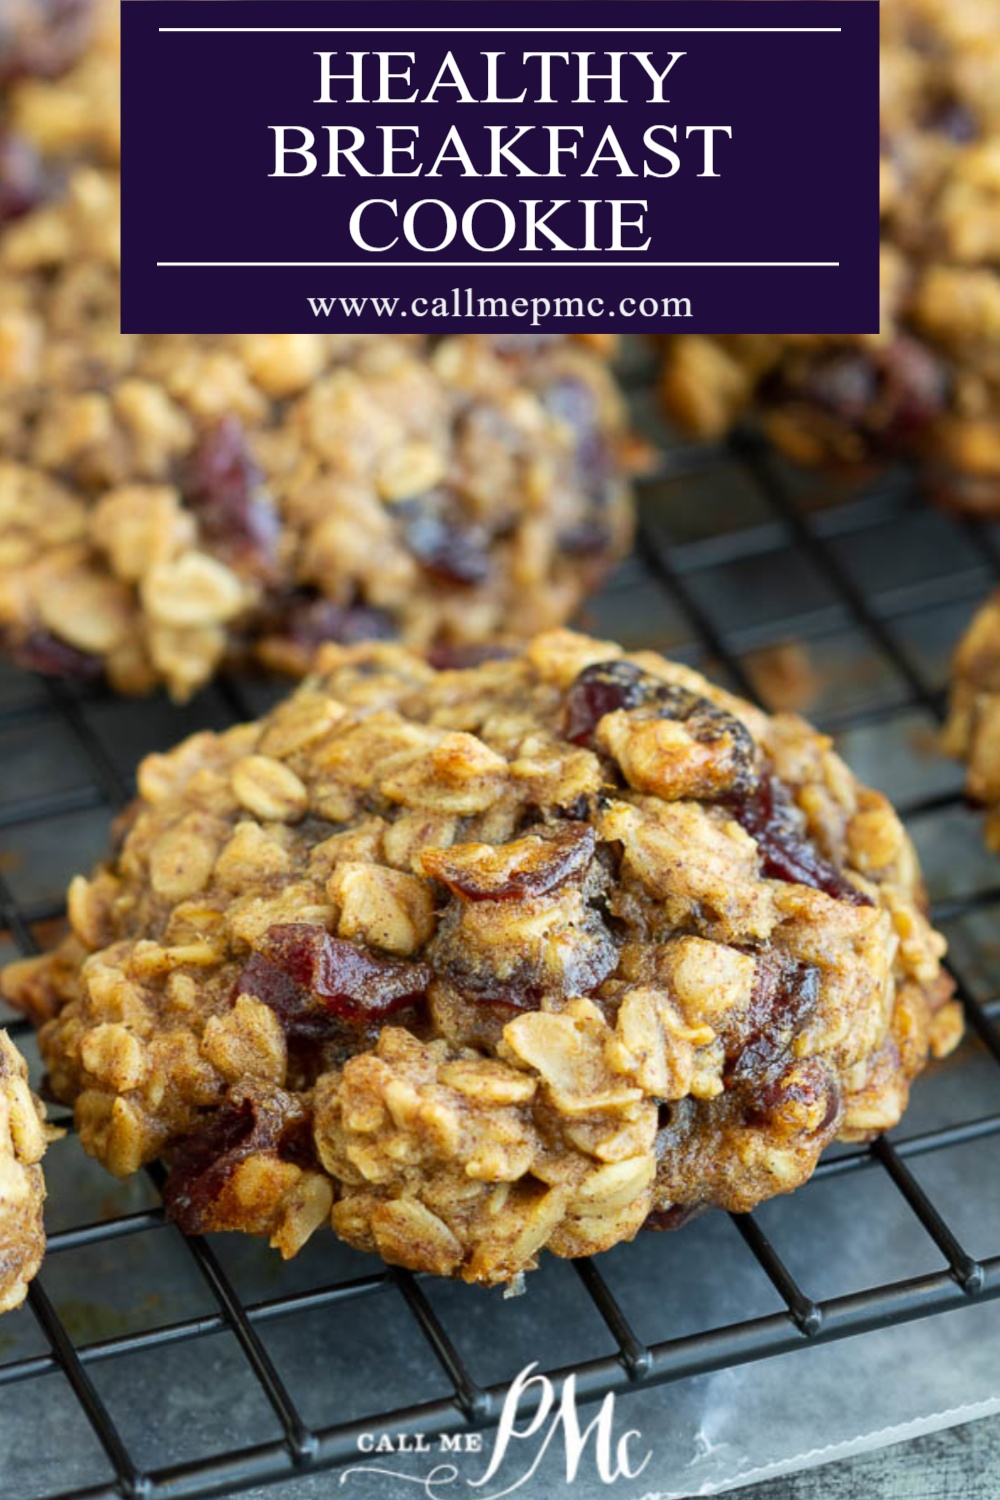 Large oatmeal cookie with dried cranberries on wire rack